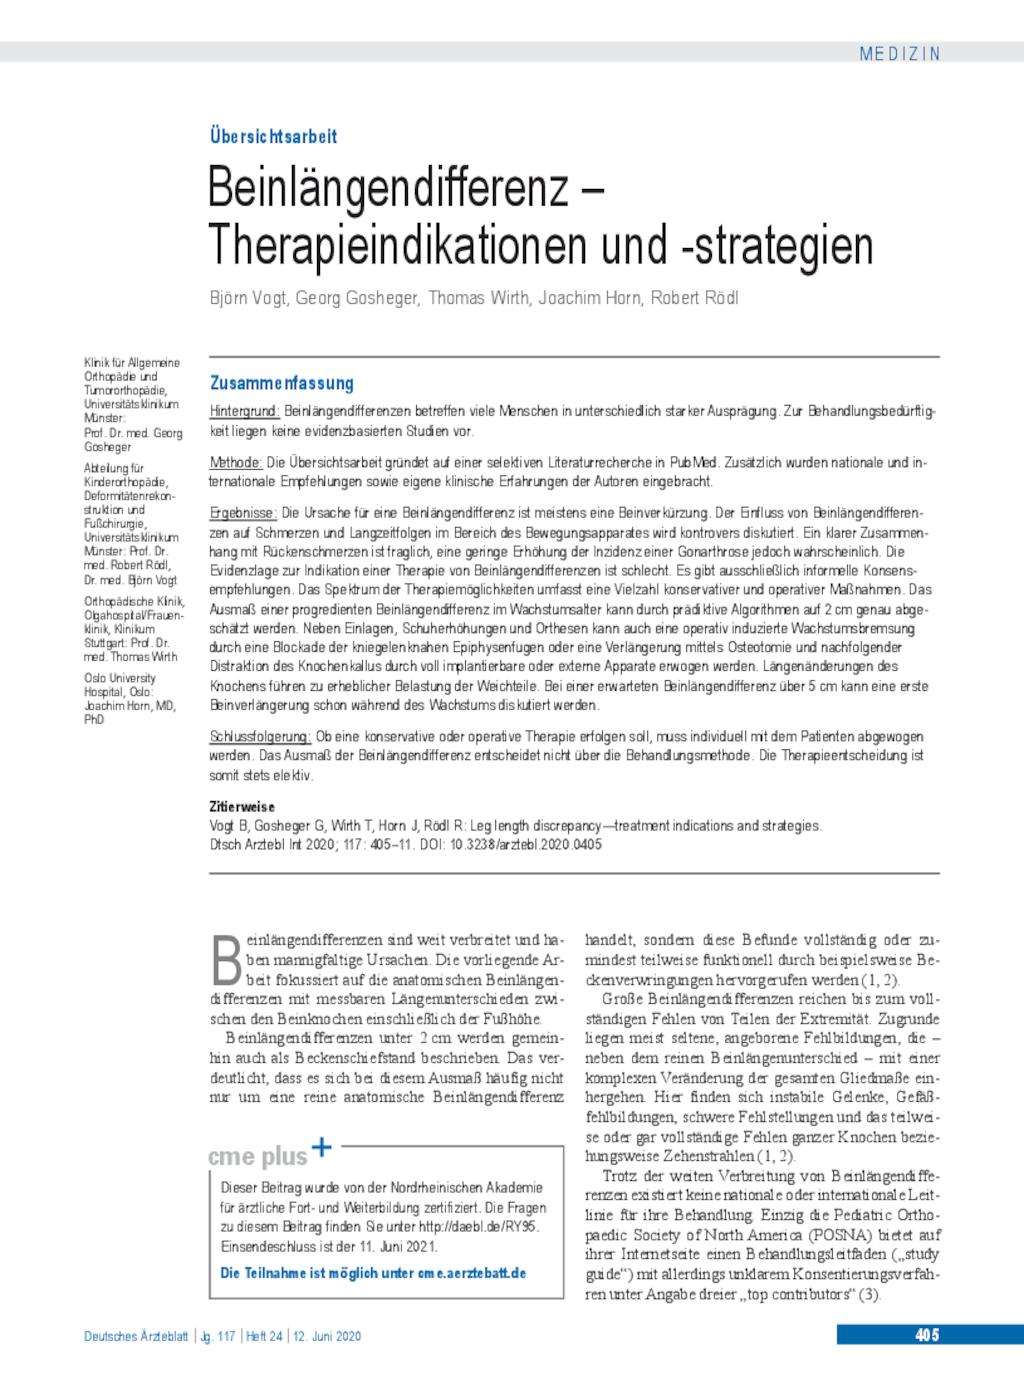 Beinlängendifferenz – Therapieindikationen und -strategien